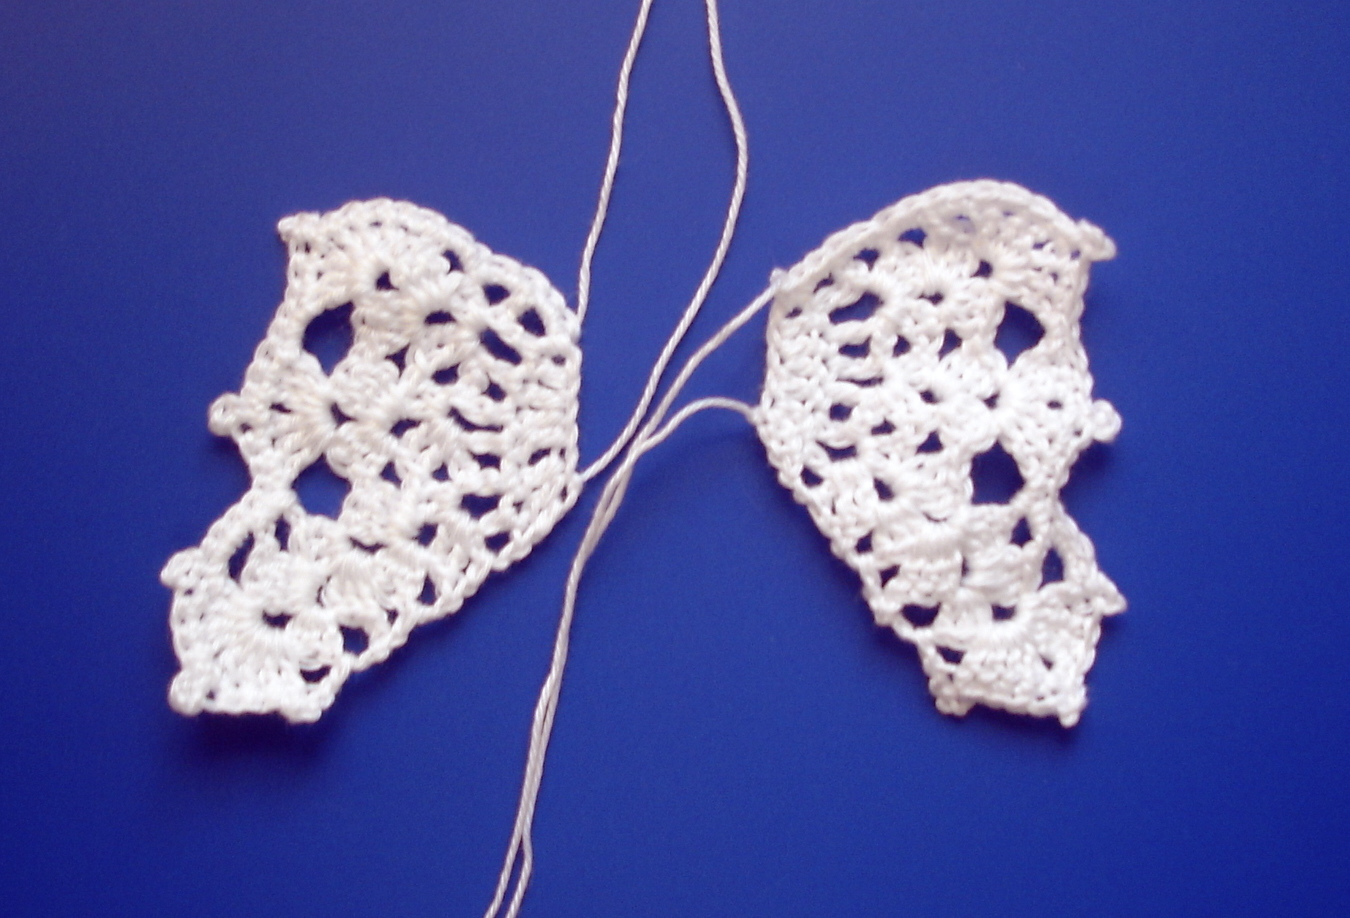 Angel Crochet Pattern - YouTube | Crochet angel pattern, Crochet ... | 918x1350